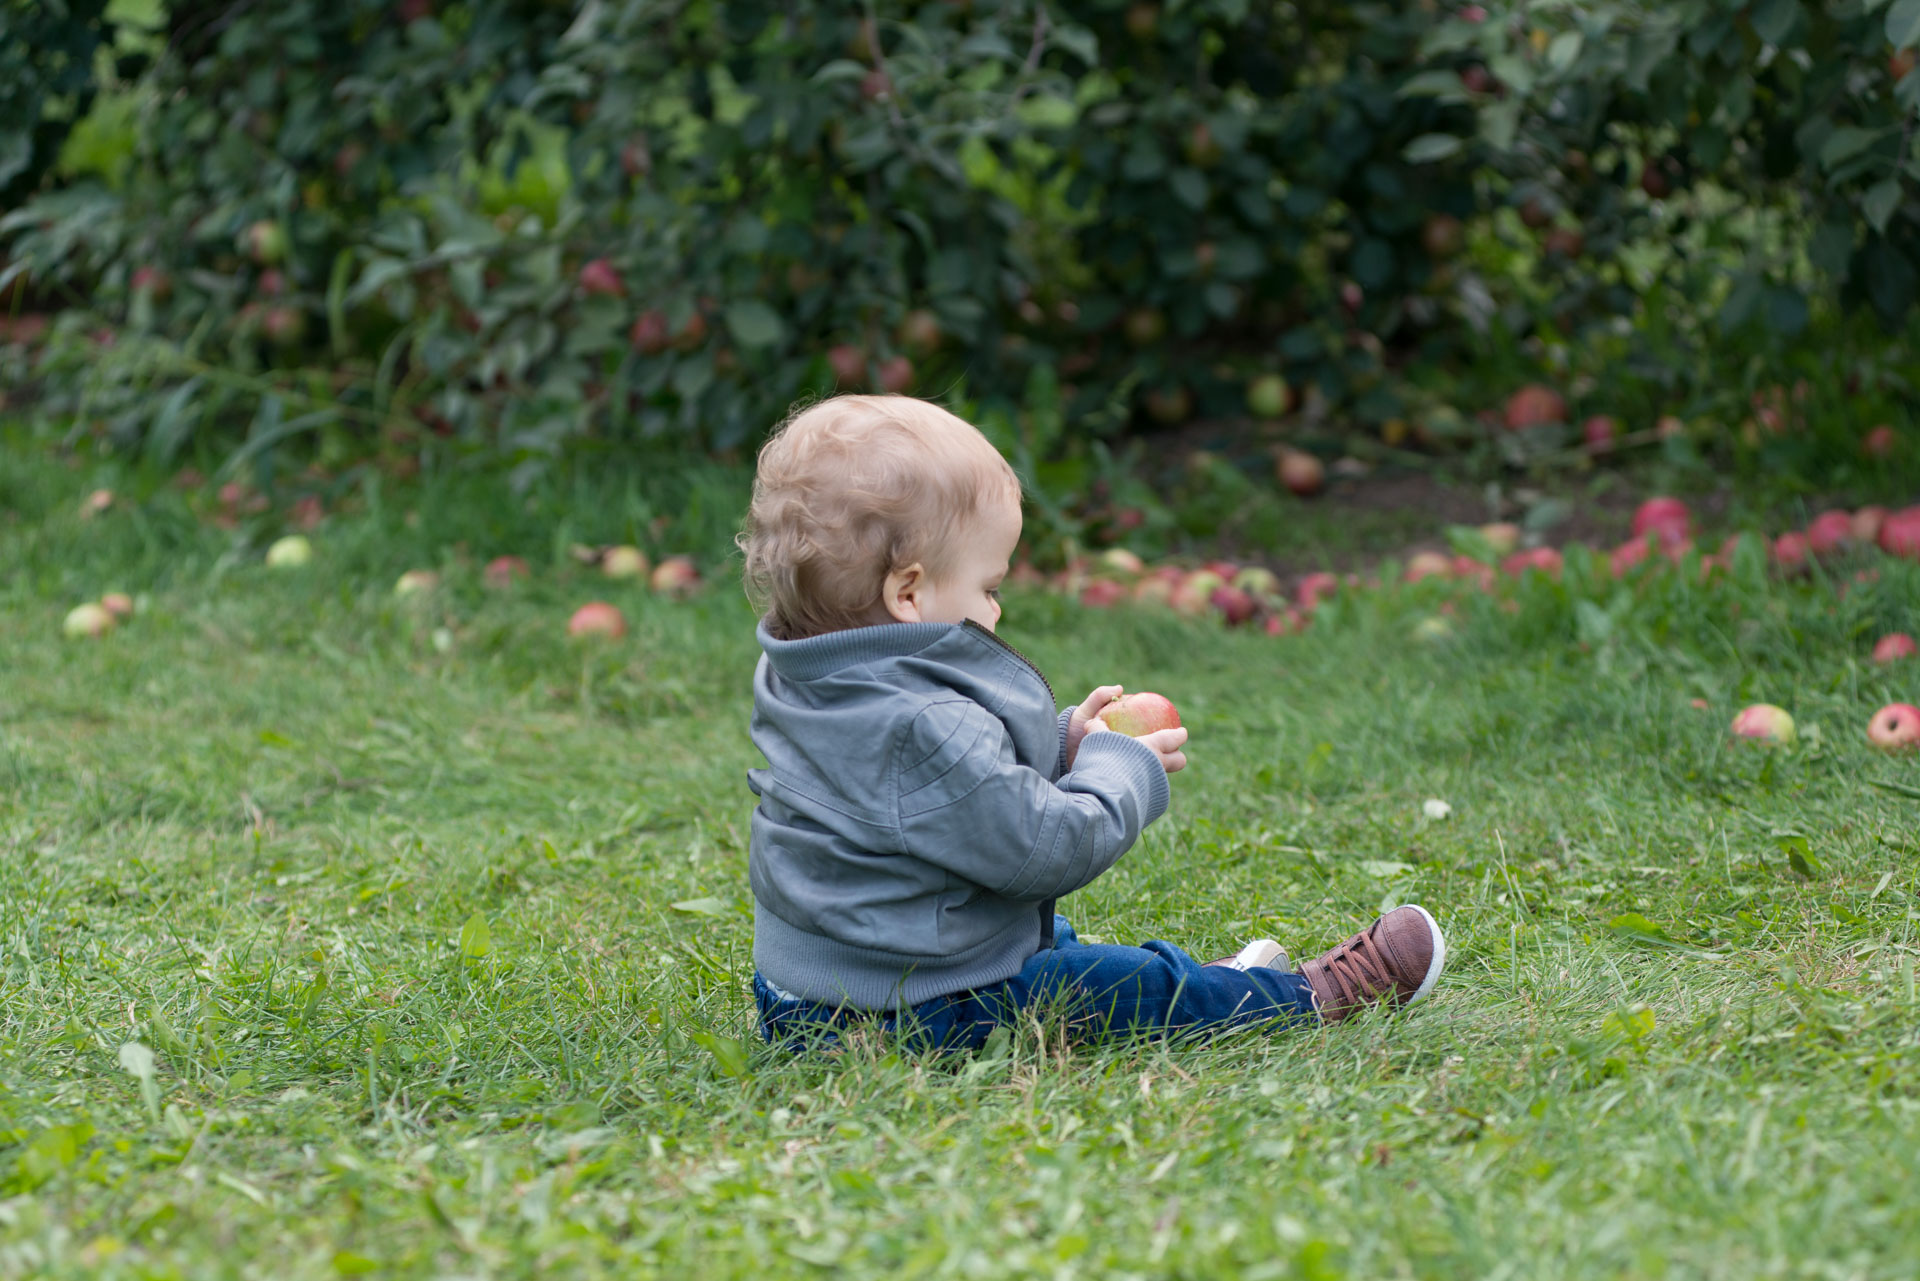 Addie Lane Studios taking children photography at Aamodt's Apple Farm in Stillwater where this little boy goes on an apple adventure.